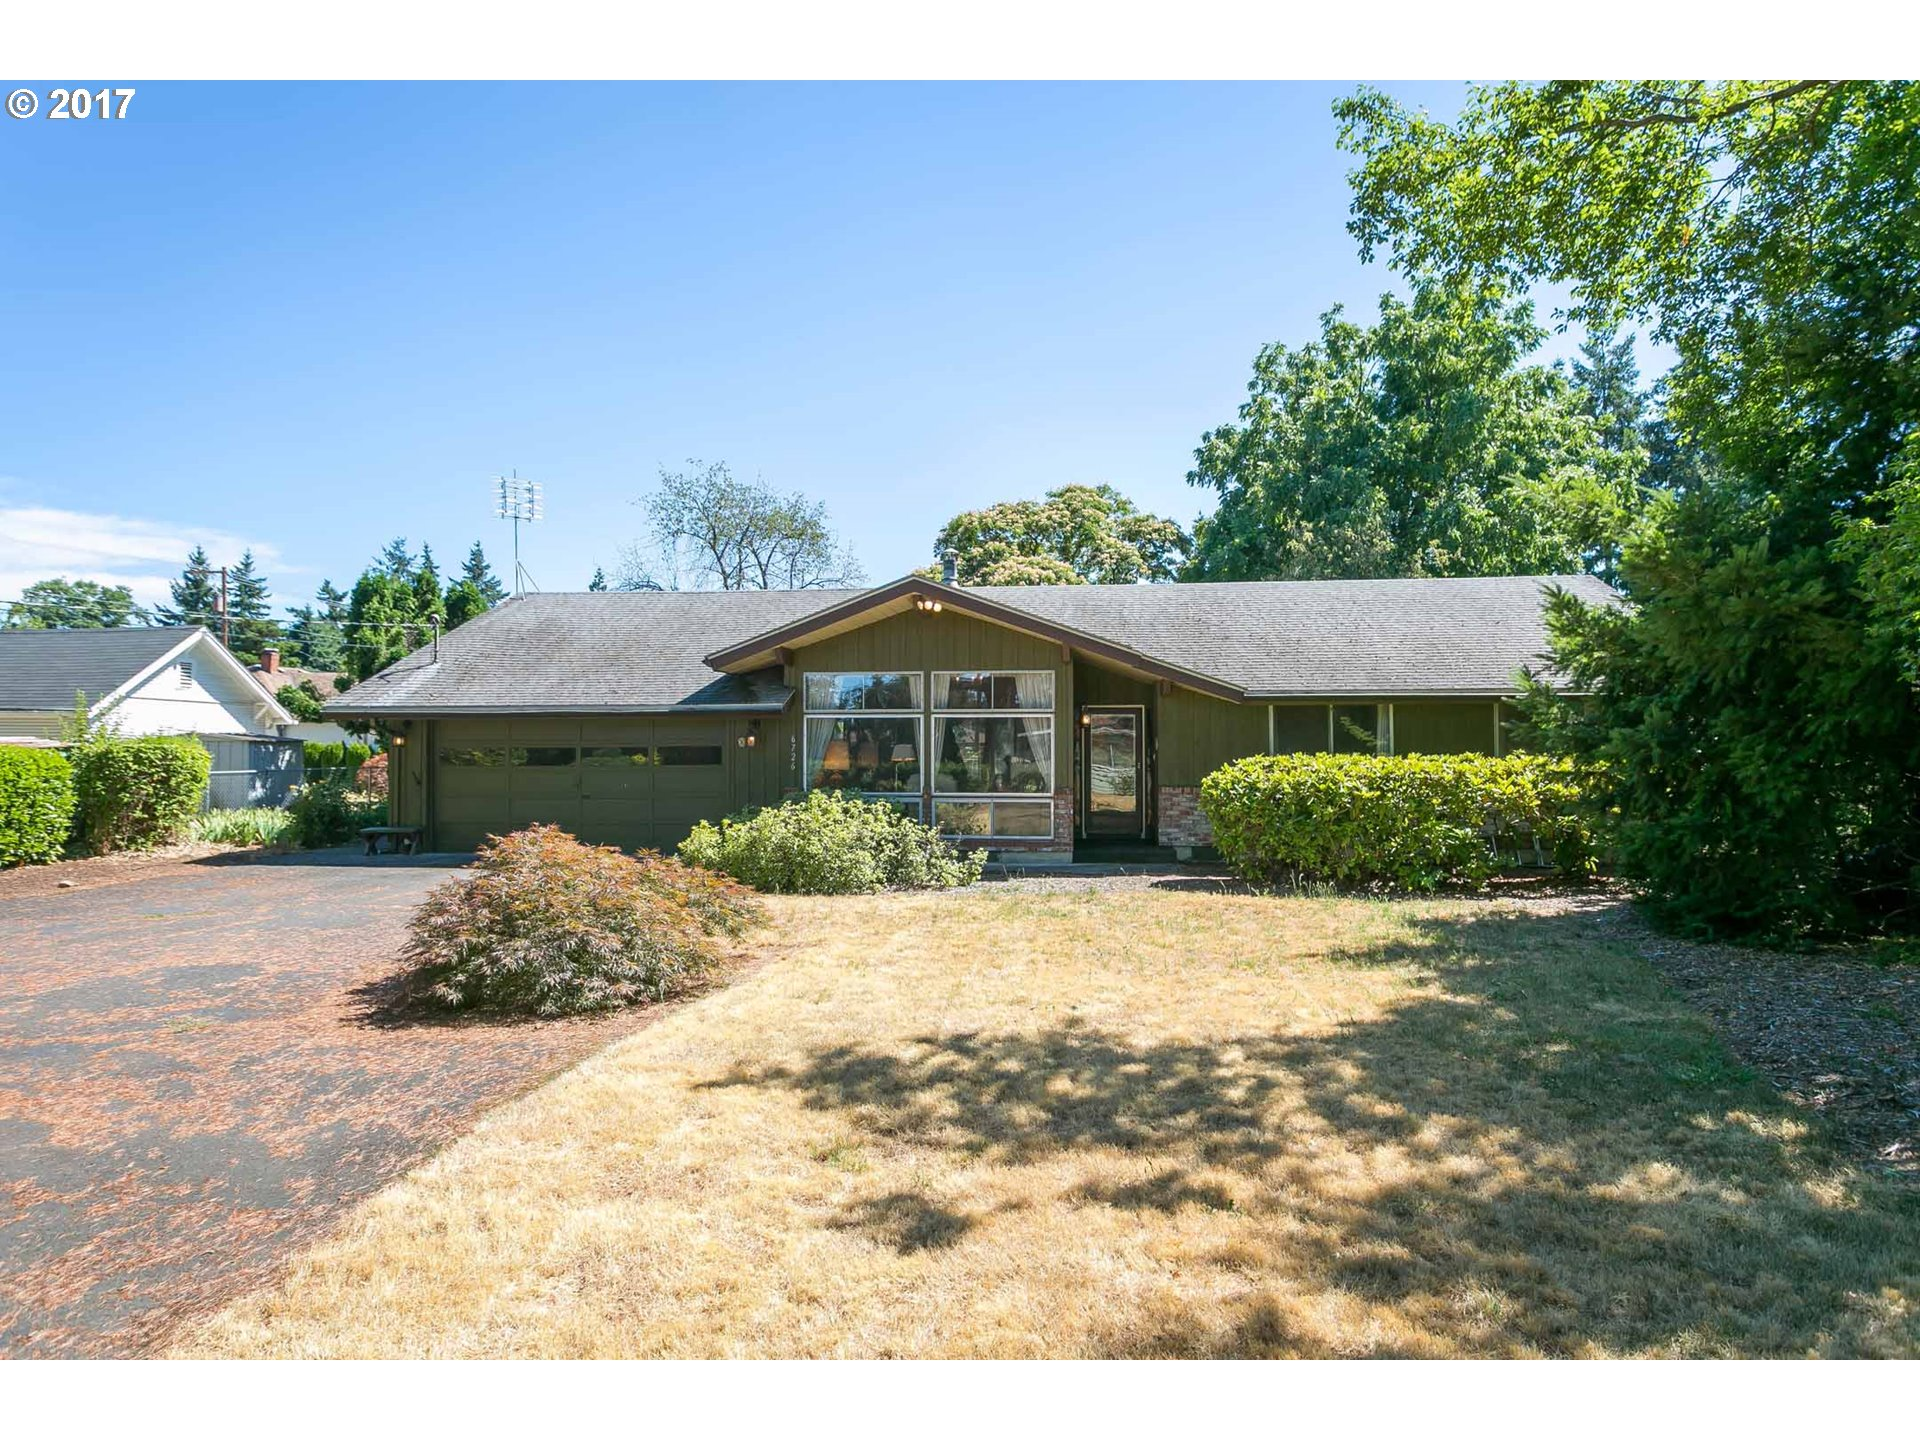 CALLING DEVELOPERS,REHAB-ERS AND BUYERS WANTING 2 HOUSES ON ONE TAX LOT. 1/2 ACRE w/R-7 ZONING.BUILDER PACKET AVAIL. Only 2 owners/ every surface original. Hardwood floors in most areas. Vaulted cedar ceiling and open floorplan just needs gentle facelift.Kitchen overlooks BIG backyard and covered patio. Smaller house is 1 bdrm, 1 bath, w/dining & living areas,kit, big utility rm.  guess about 800-850 SF.  Has been rented for years